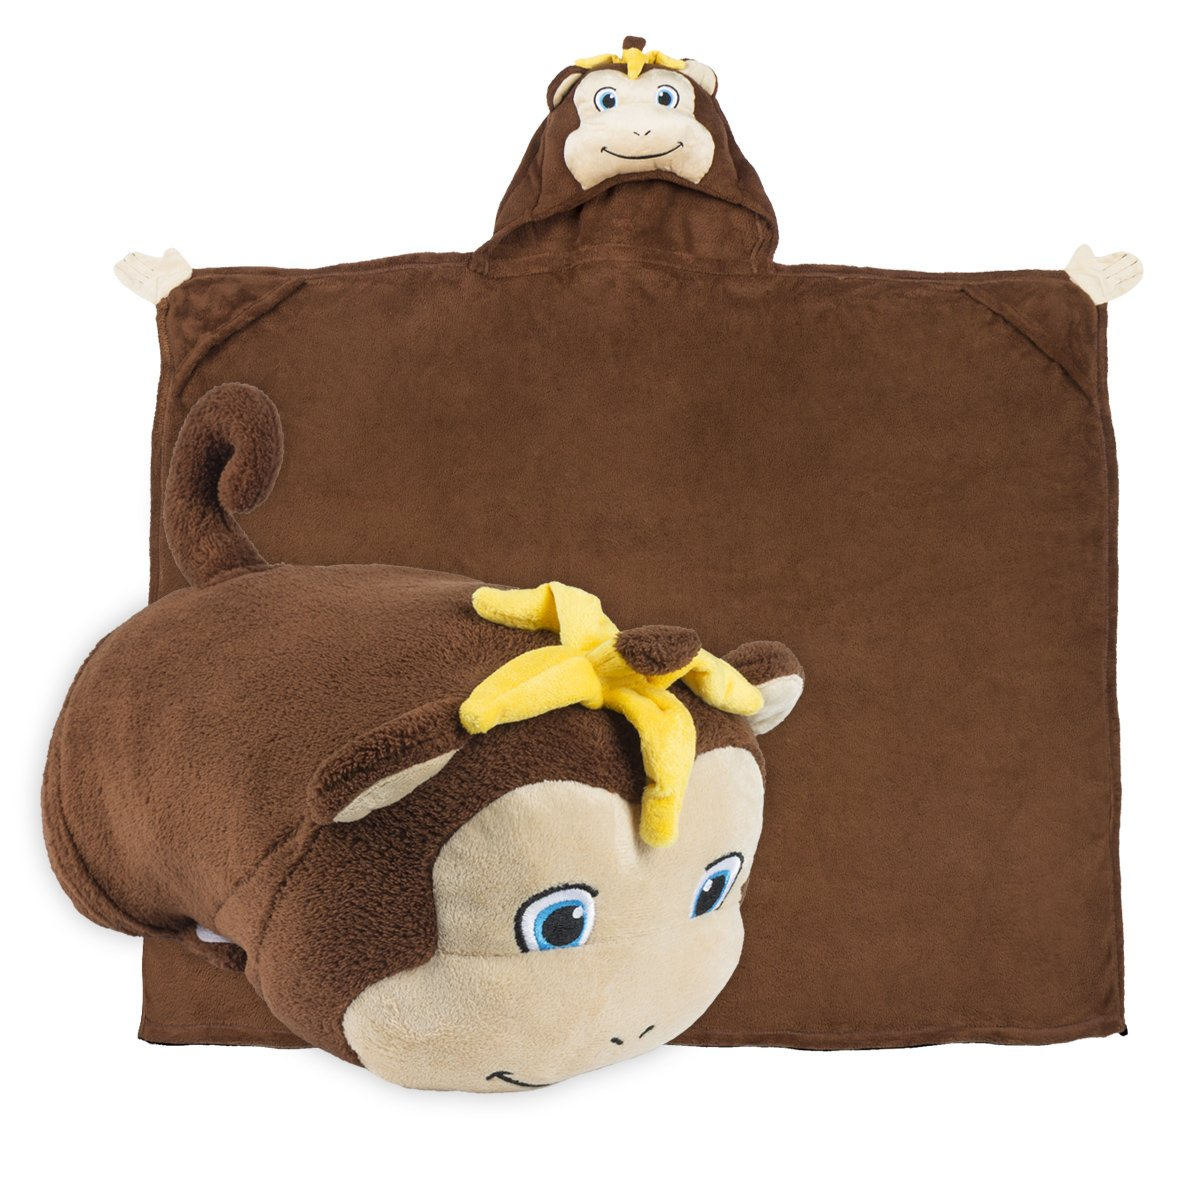 Comfy Critters Stuffed Animal Blanket – Monkey – Last Chance Characters – Kids huggable pillow and blanket perfect for pretend play, travel, nap time